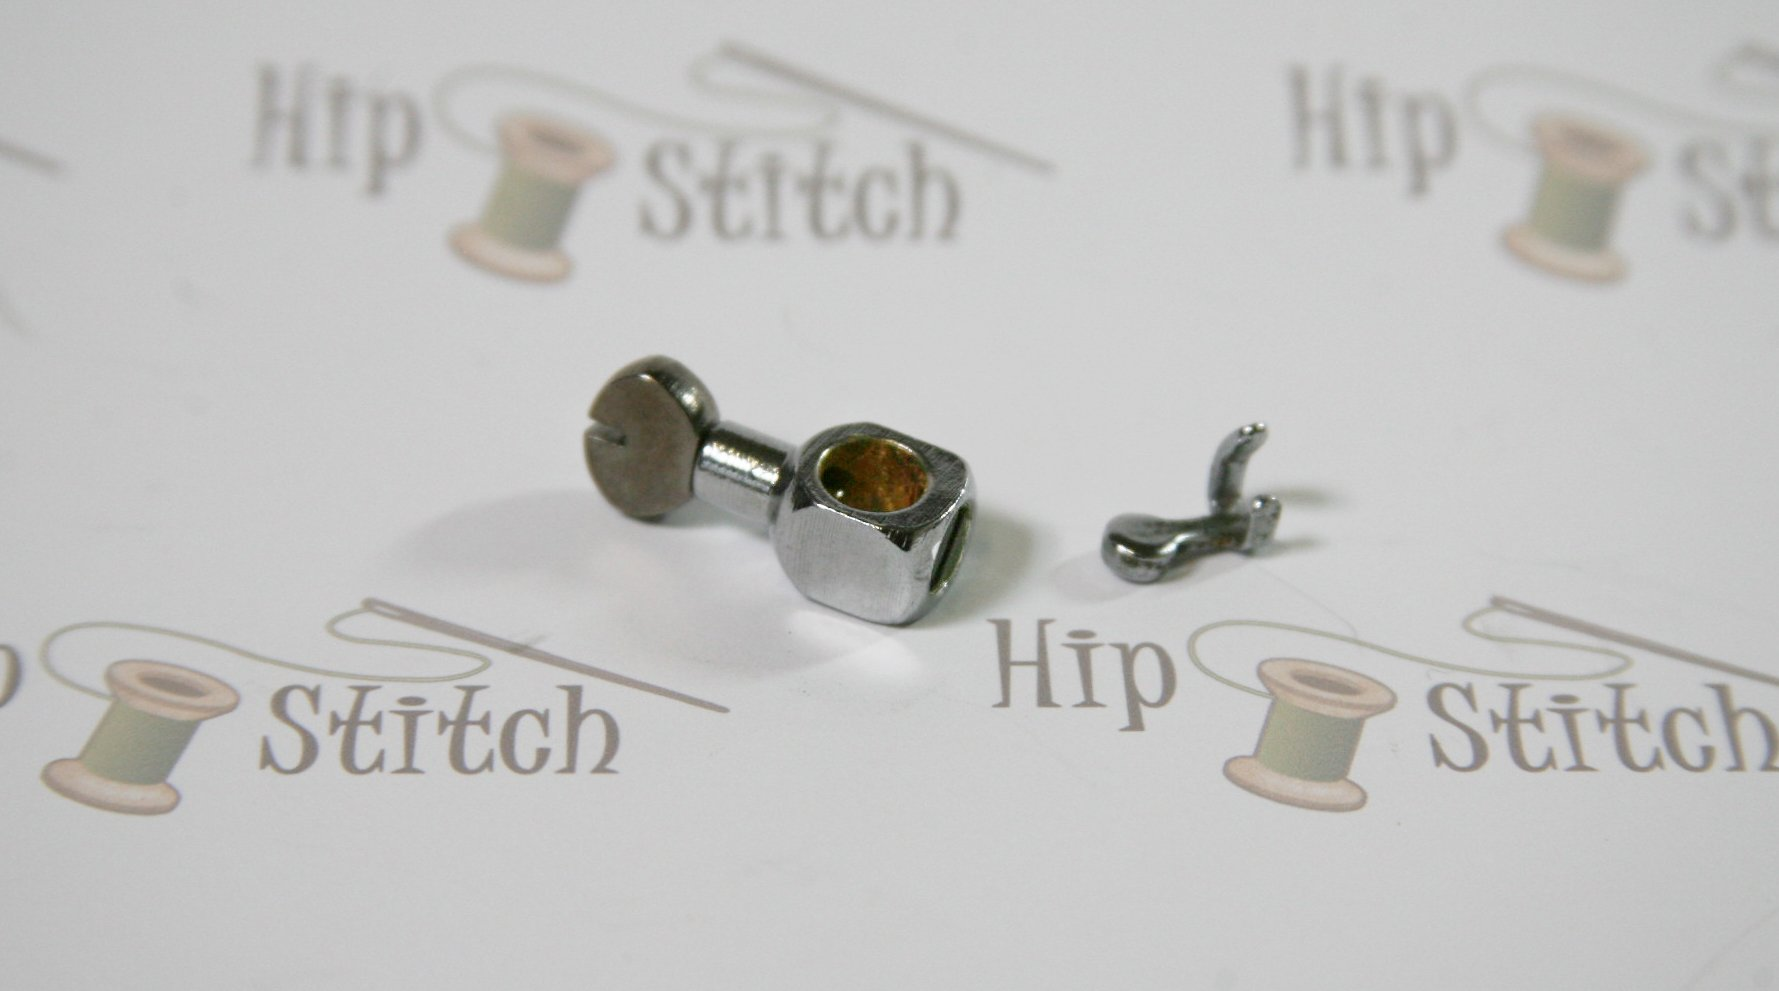 Singer Featherweight 221 Needle Clamp & Thread Guide